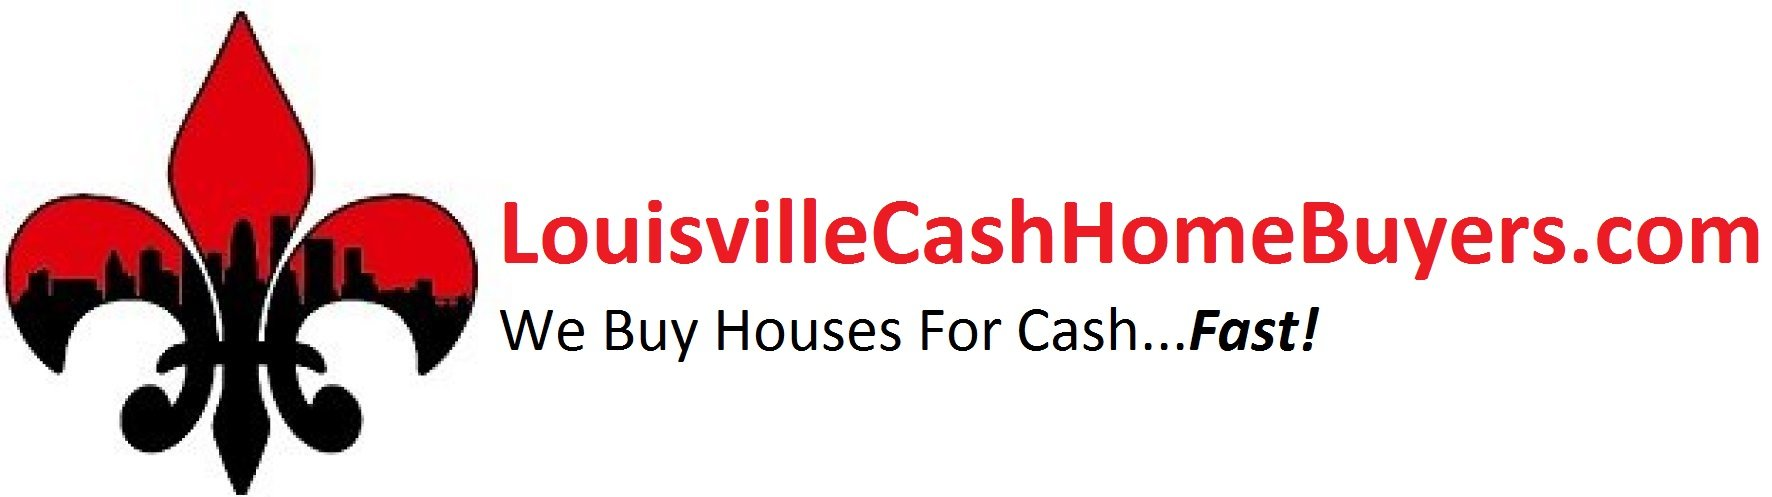 Louisville Cash Home Buyers logo